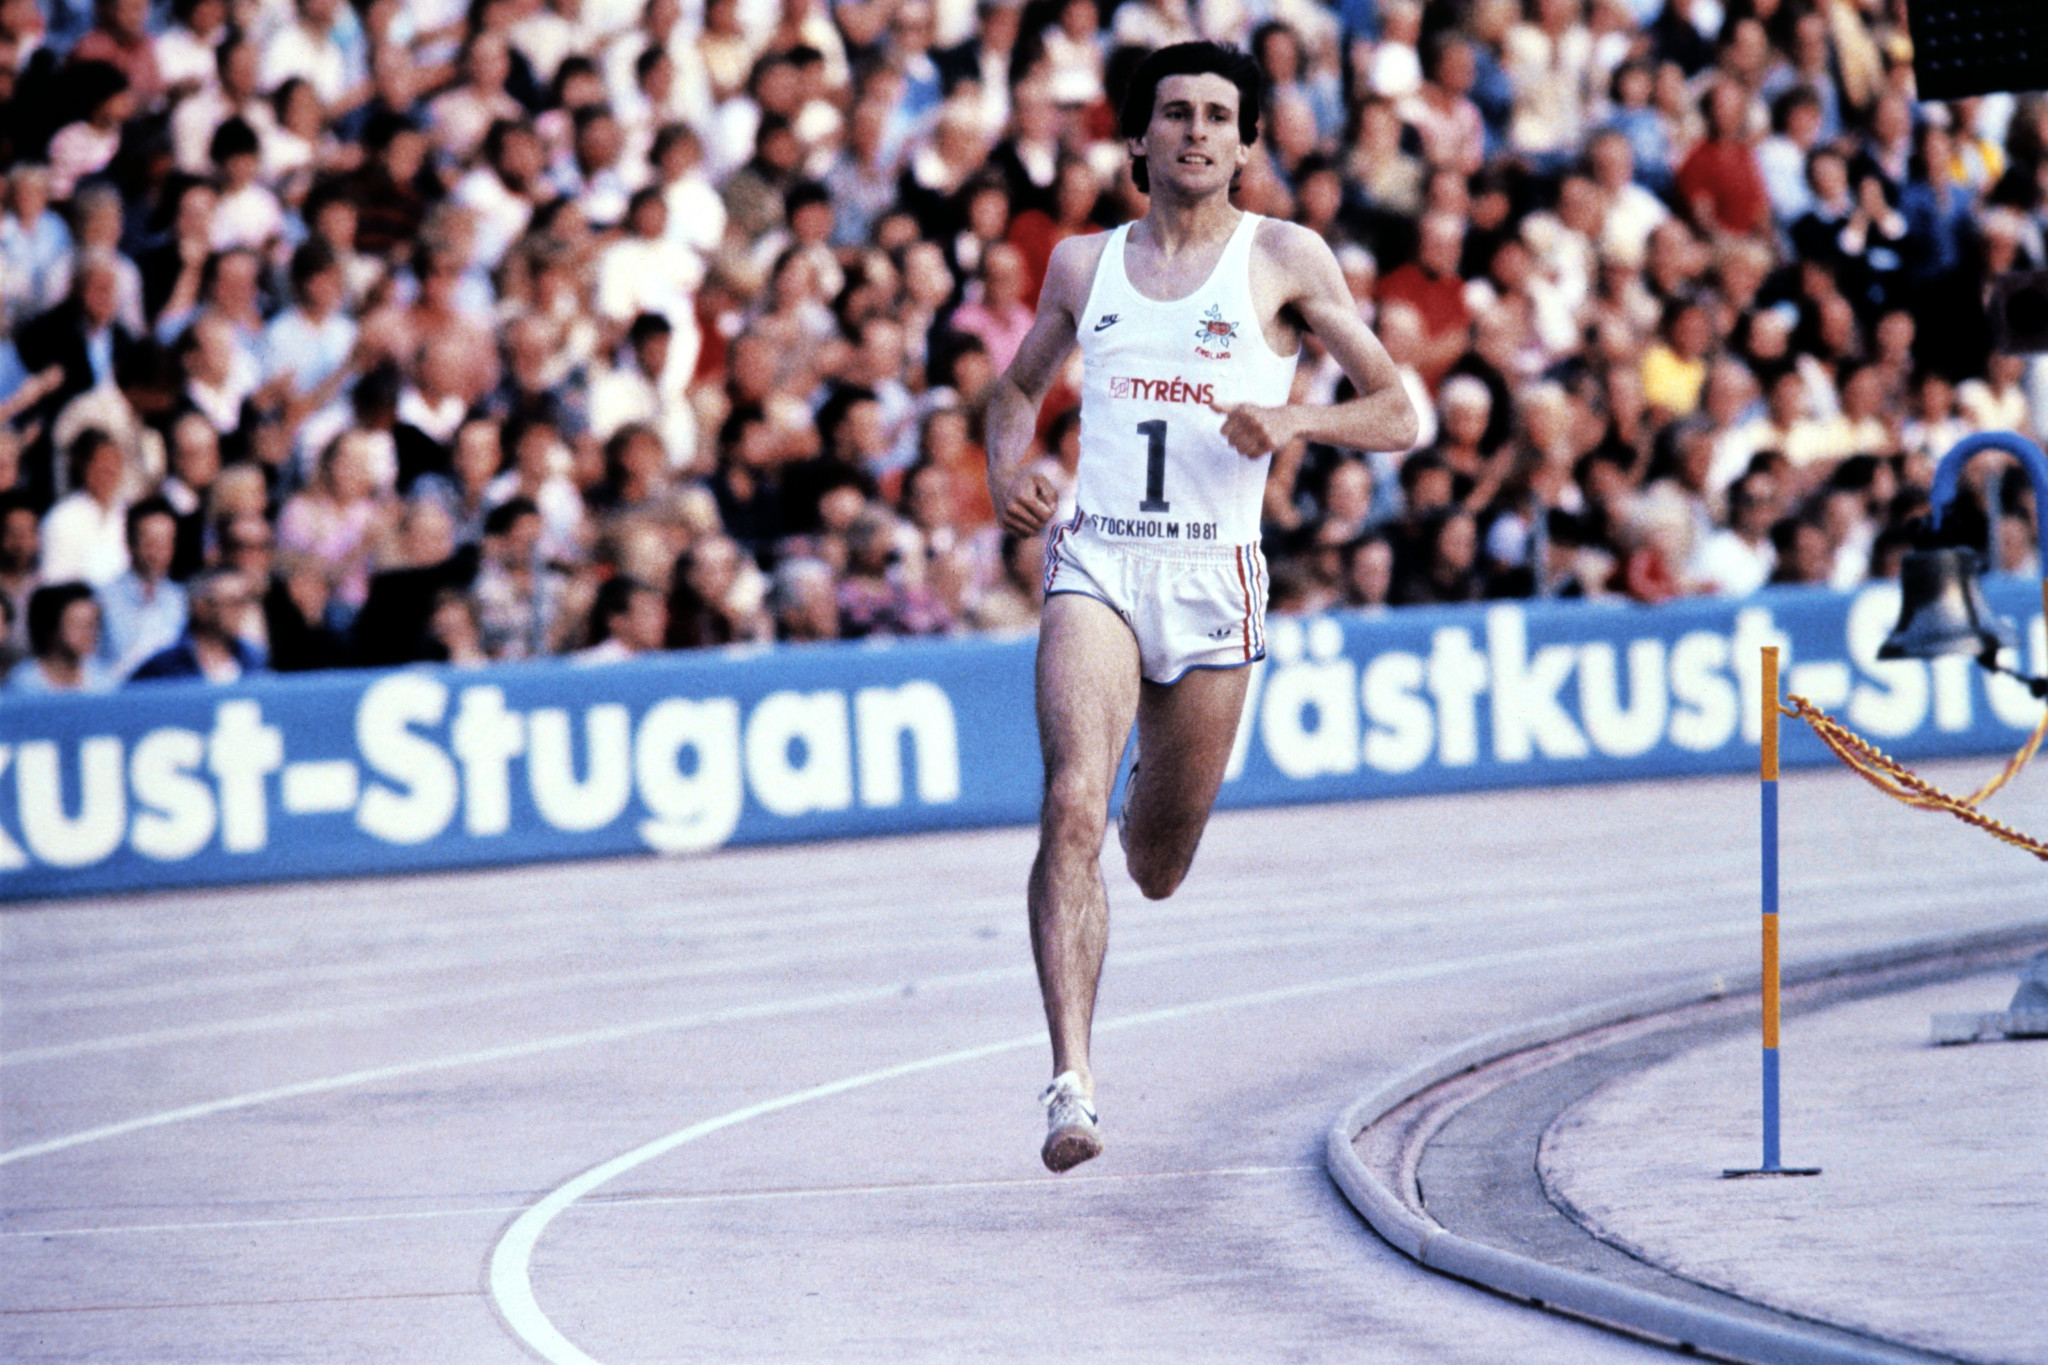 Seb Coe was one of the victors on the track in Rome in 1981, while others were victors off it ©Getty Images